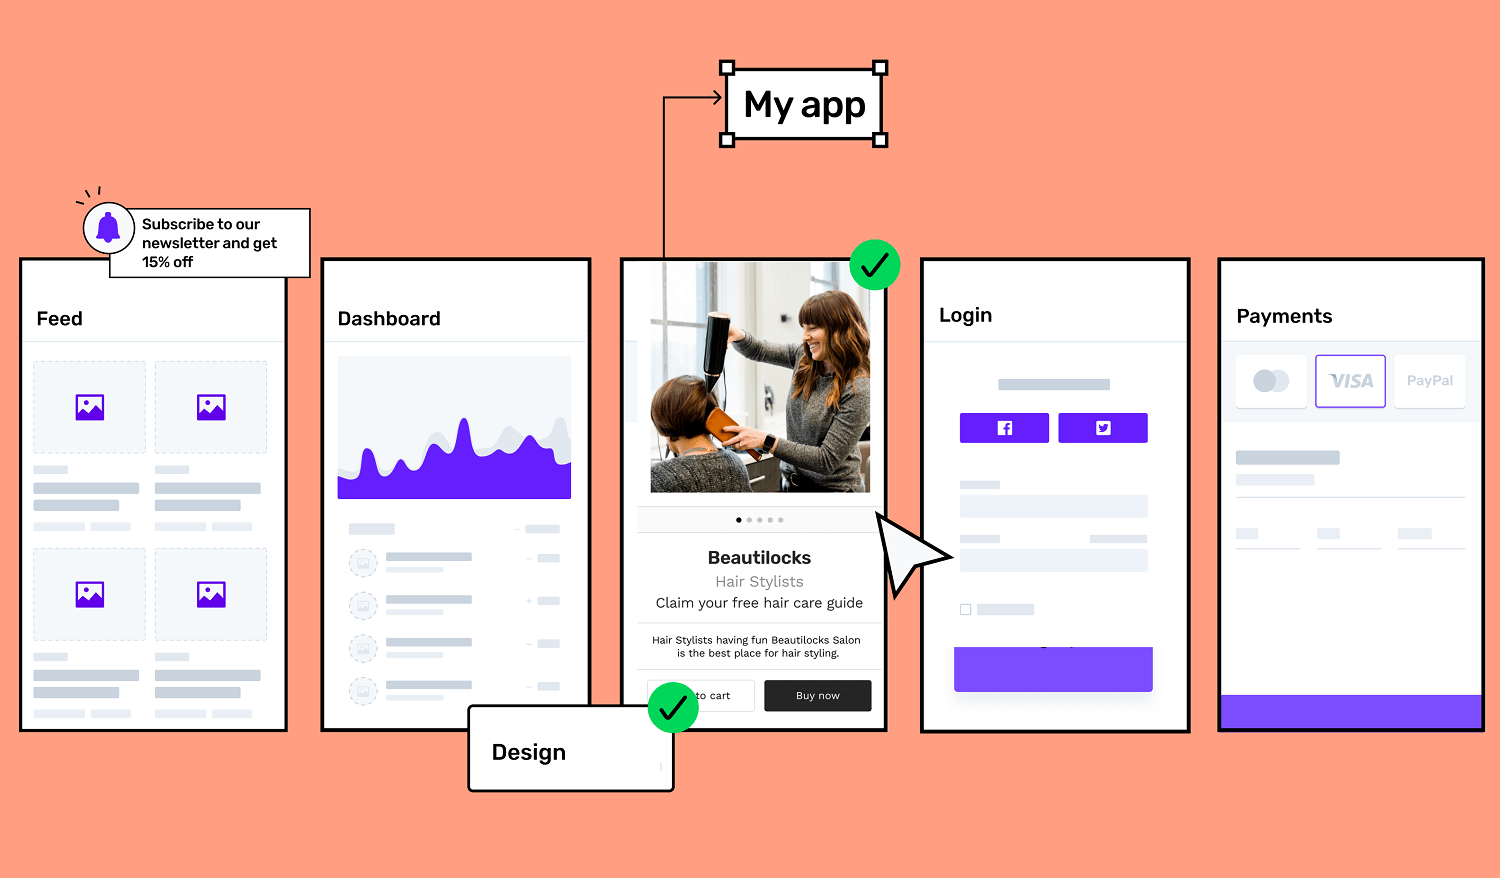 Your app screens during the development phase